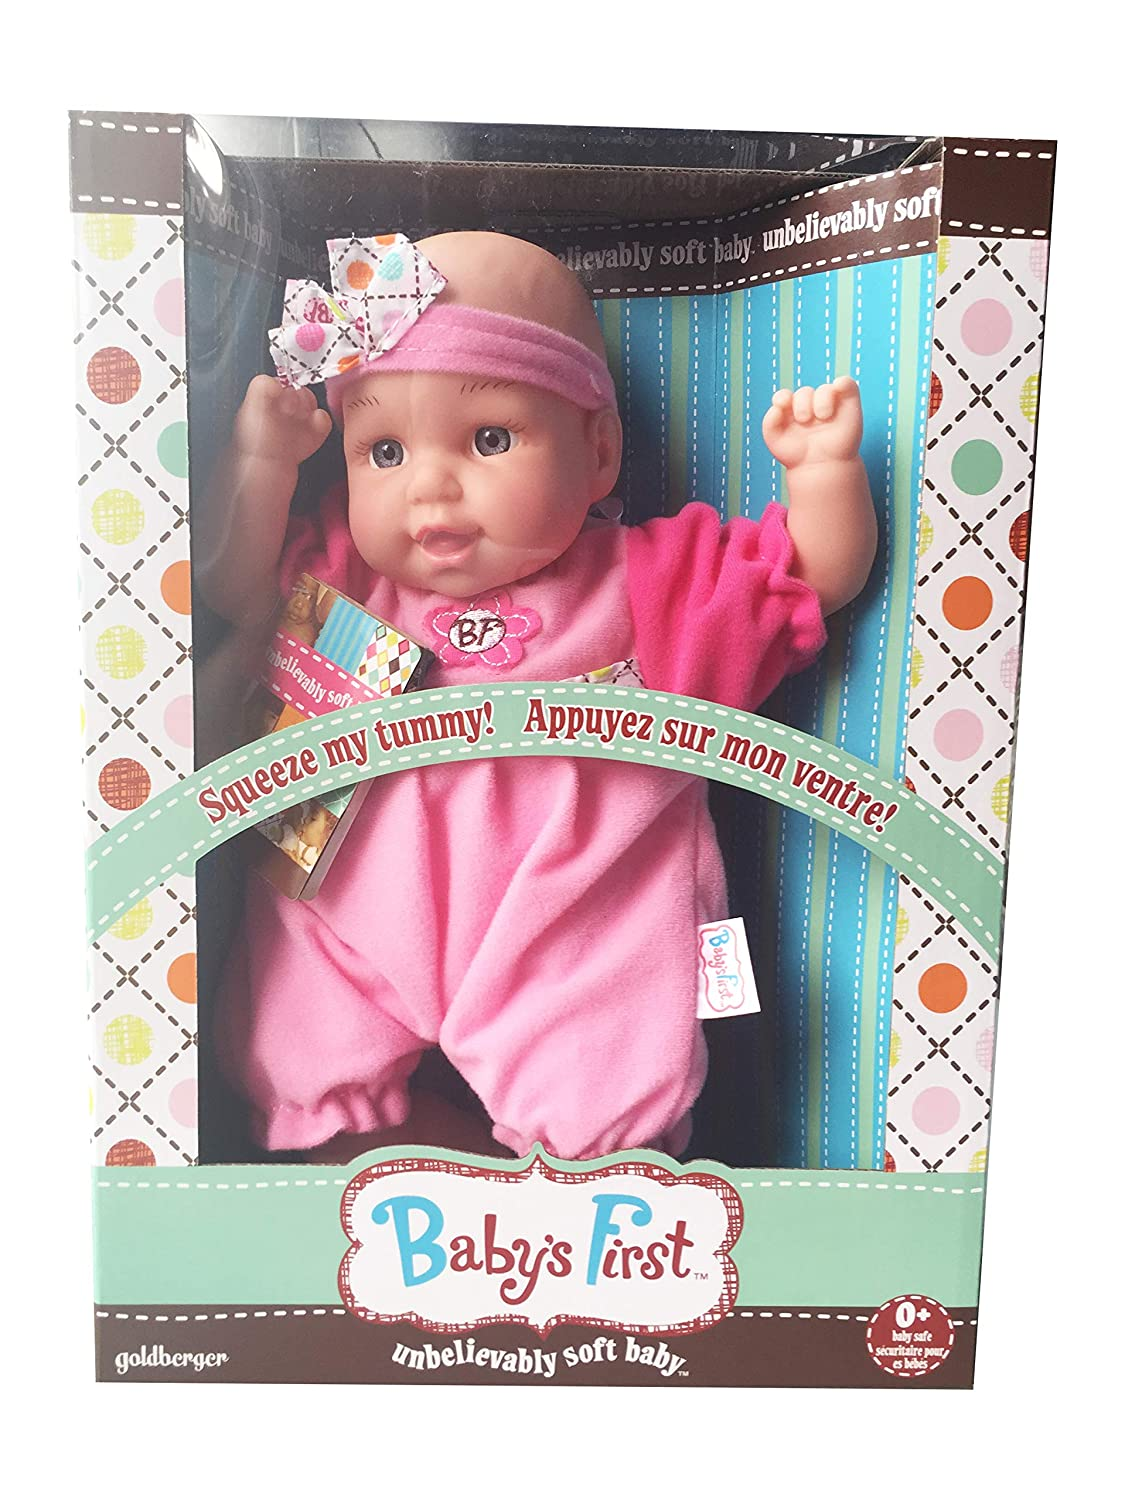 Air Baby Unbelievably Soft 13 inch Baby Doll - Pink with Stripes Goldberger Doll Mfg. 29F66A74